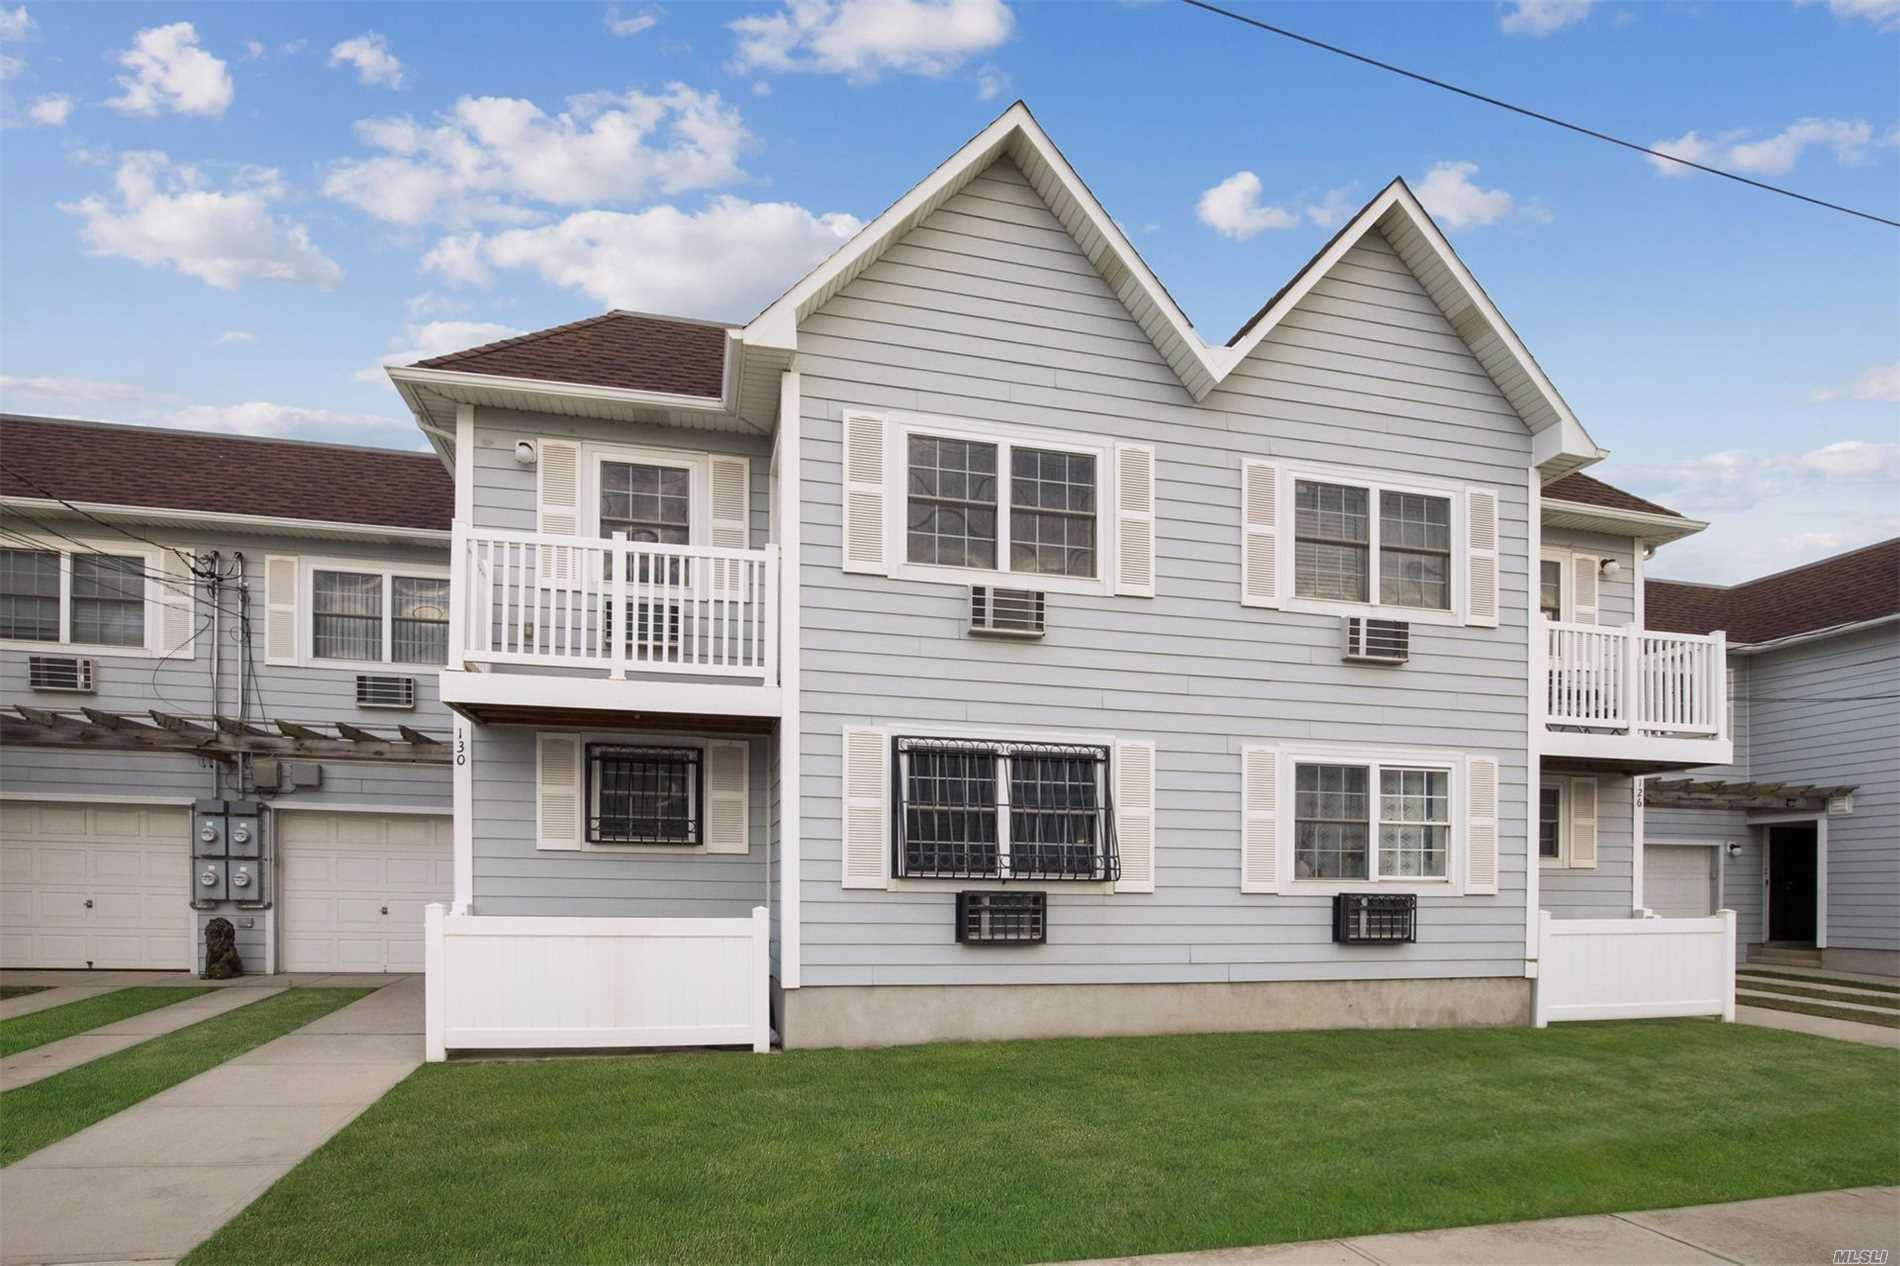 Photo of home for sale at 130 Beach 62 St, Arverne NY